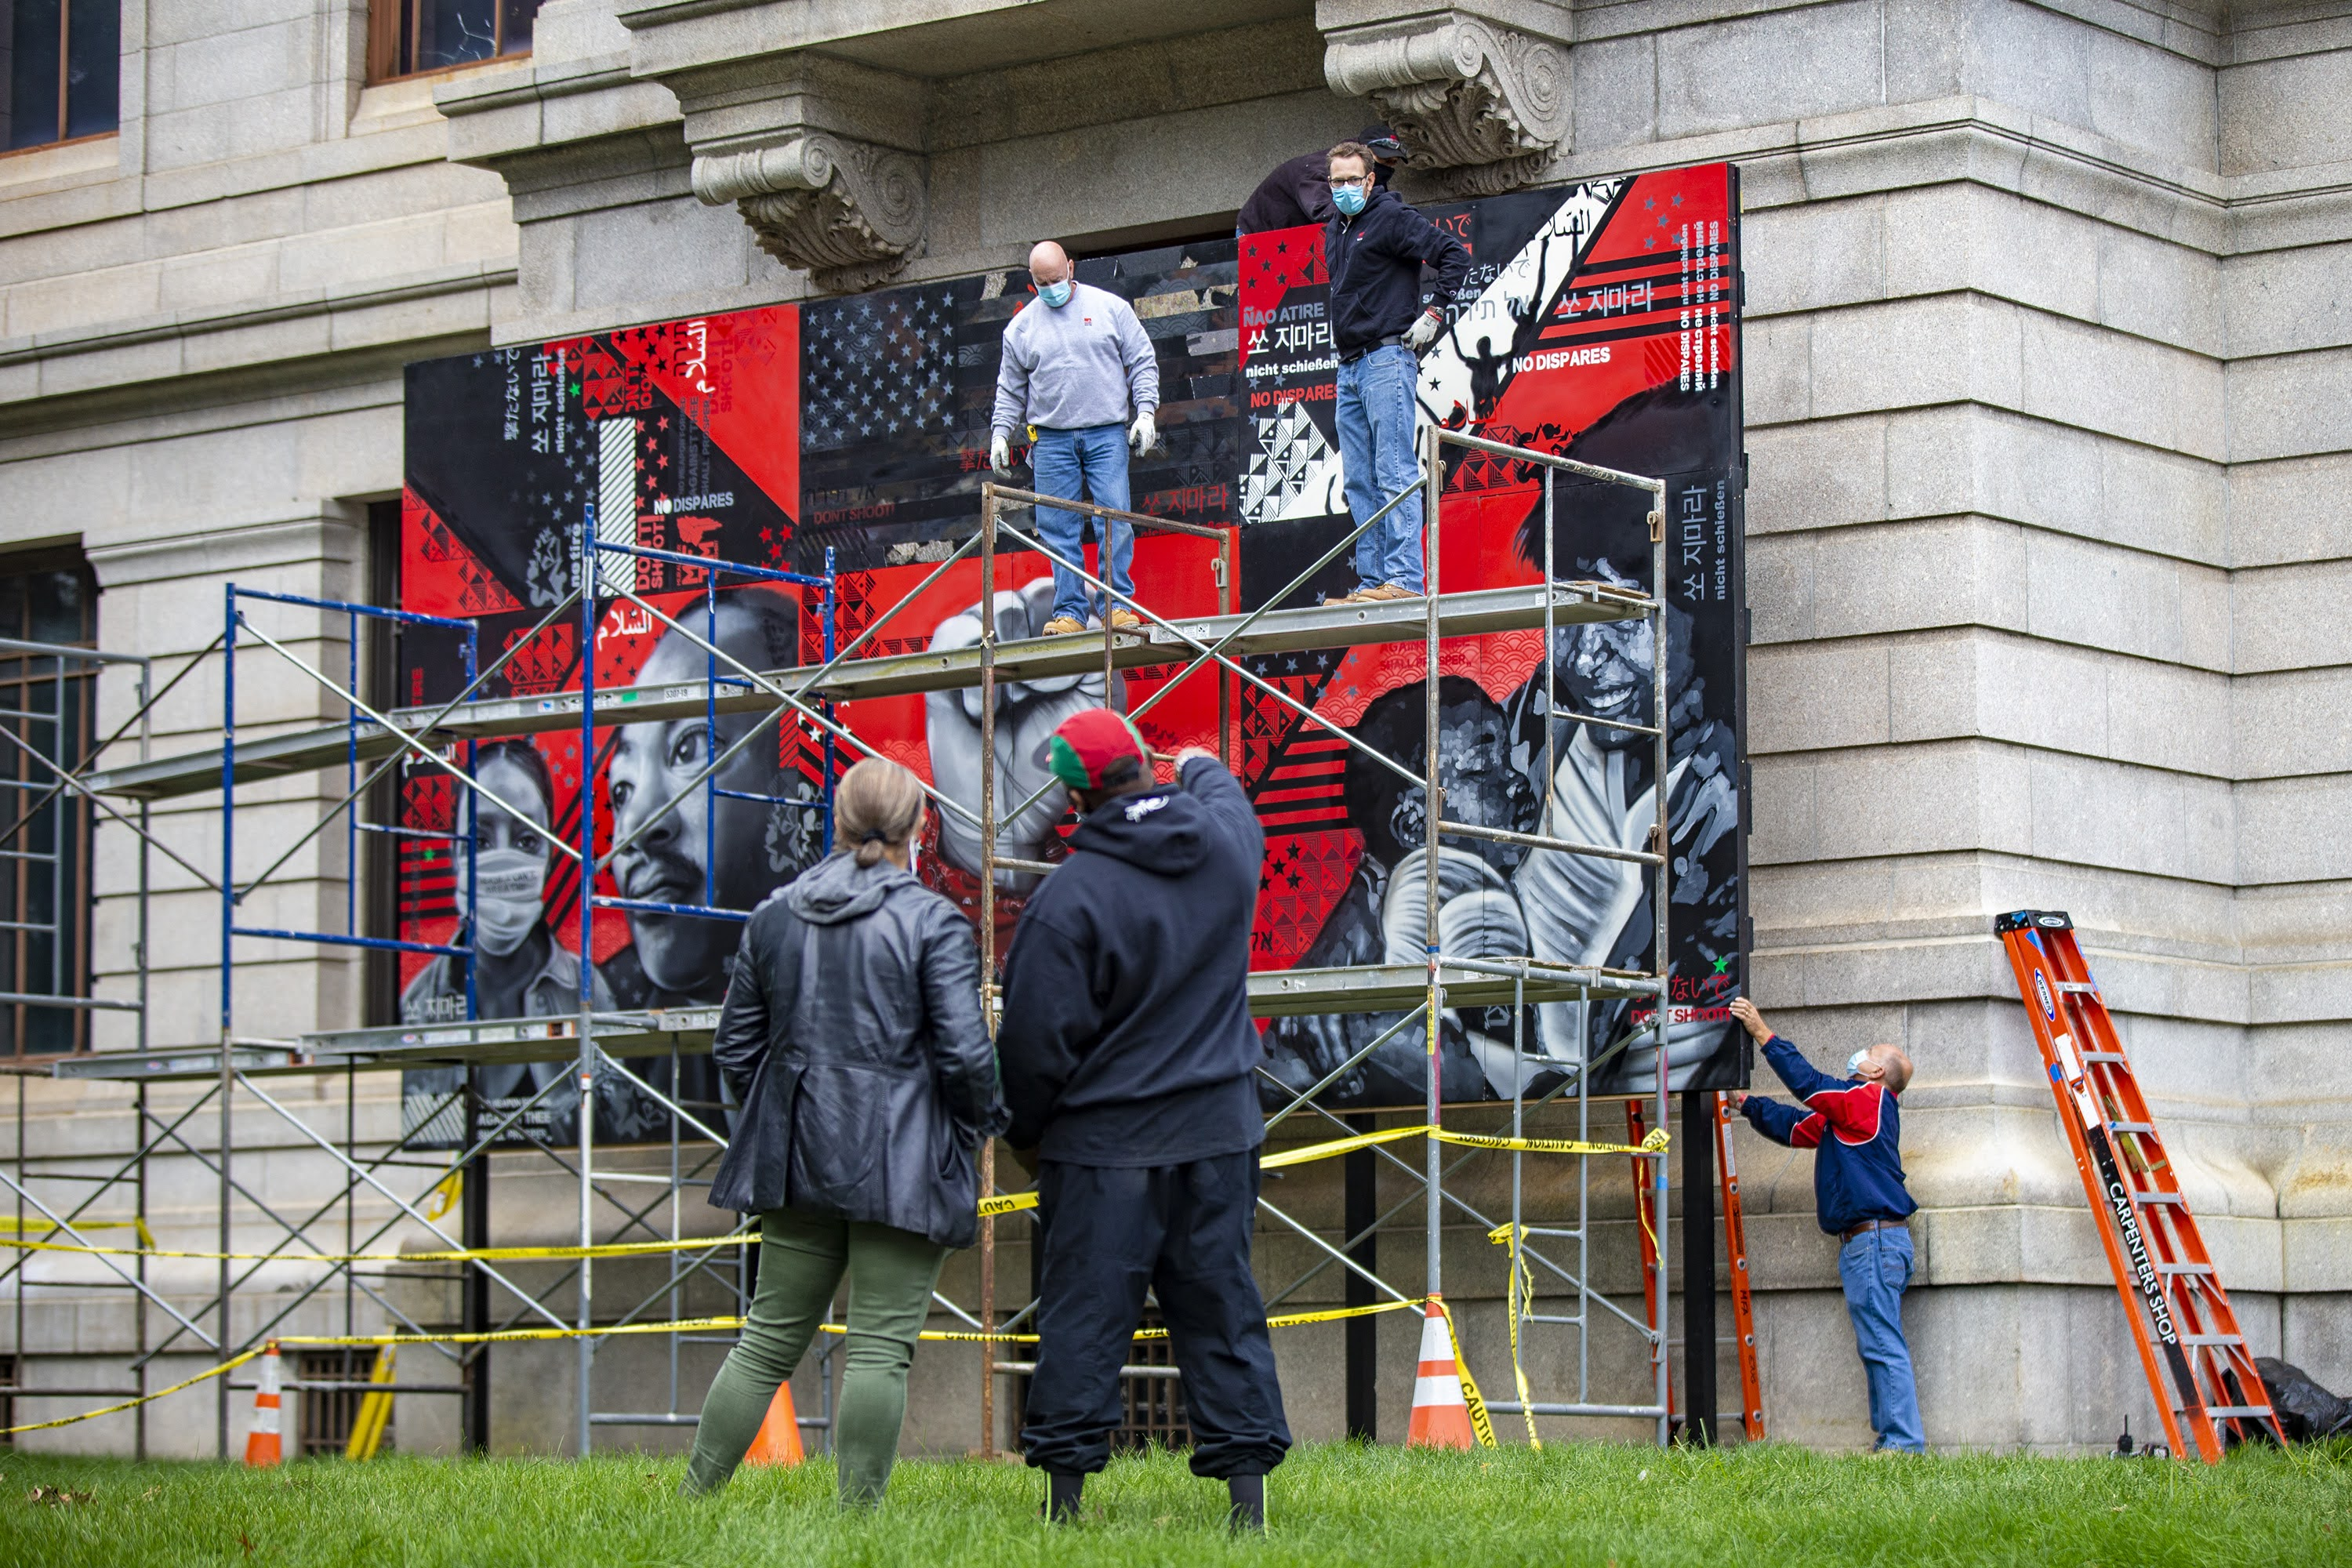 """Museum of Fine Arts' Makeeba McCreary and artist Problak Gibbs oversee the installation """"No Weapon Formed Against Thee Shall Prosper"""" created by Cey Adams, Sophia Dawson and Victor """"Marka27"""" Quiñonez on the museum's Huntington Avenue lawn. (Jesse Costa/WBUR)"""